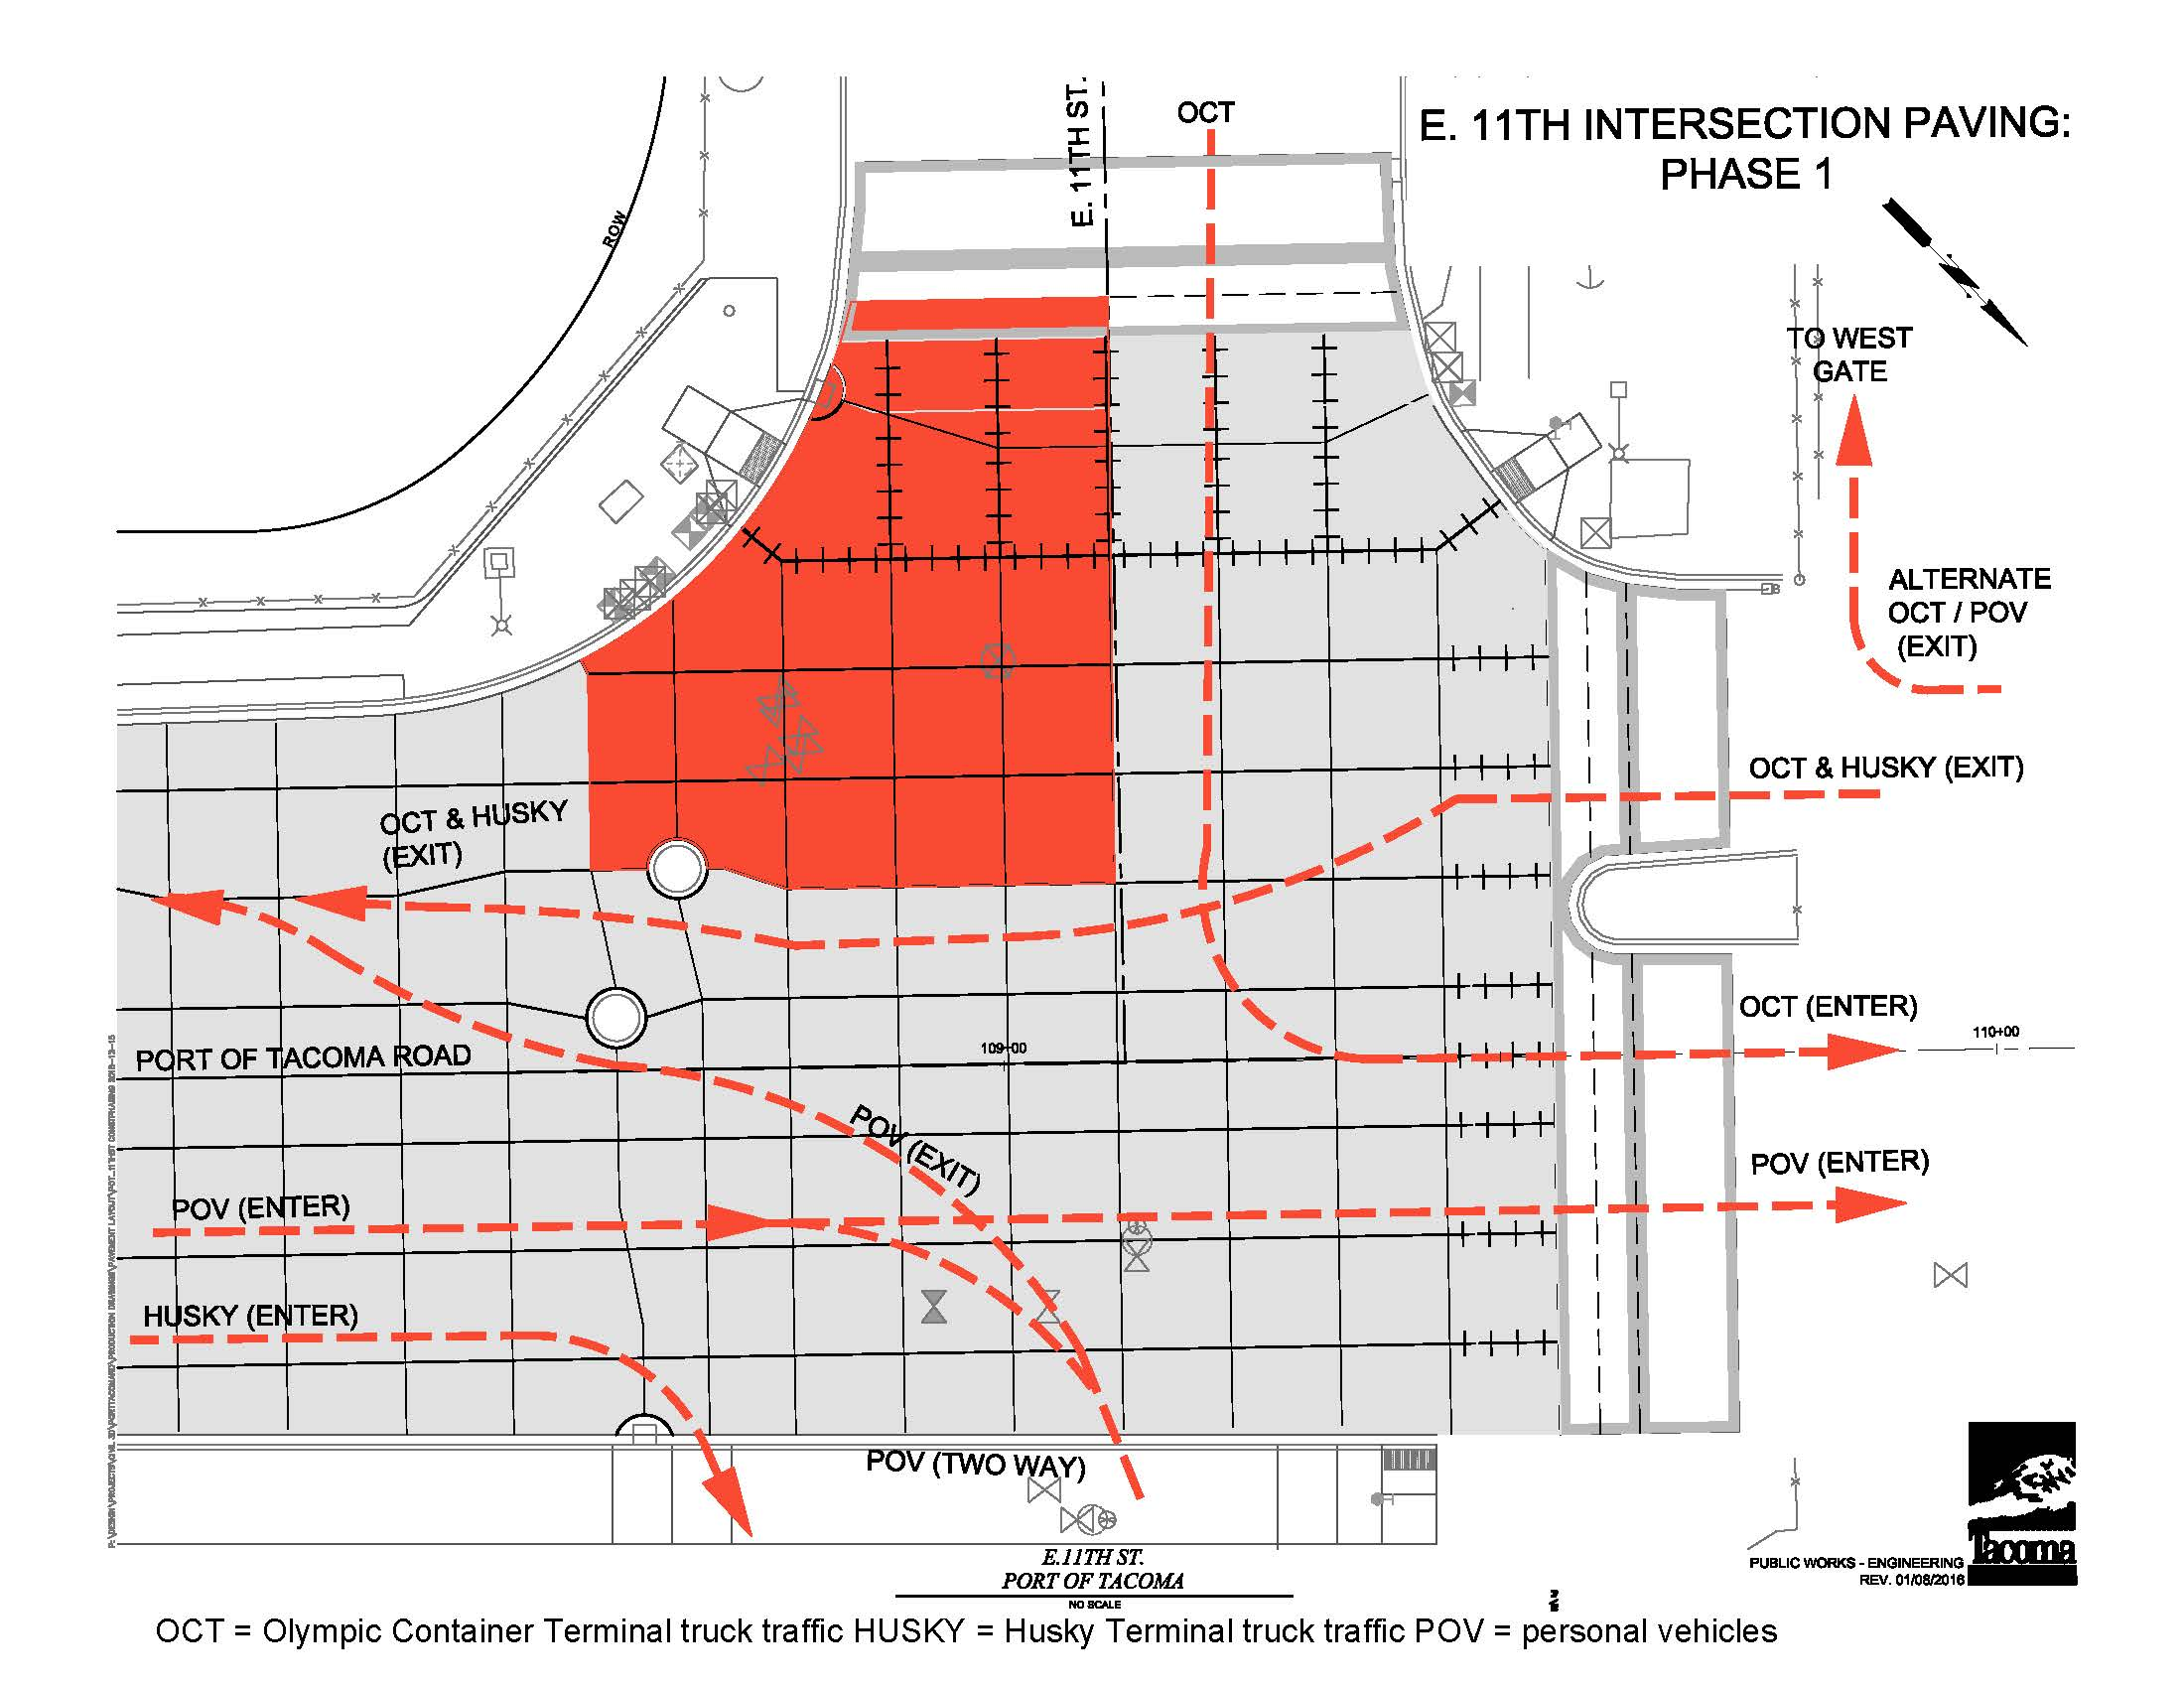 Traffic Map Tacoma.Construction Of Final Port Of Tacoma Road Intersection Begins Monday